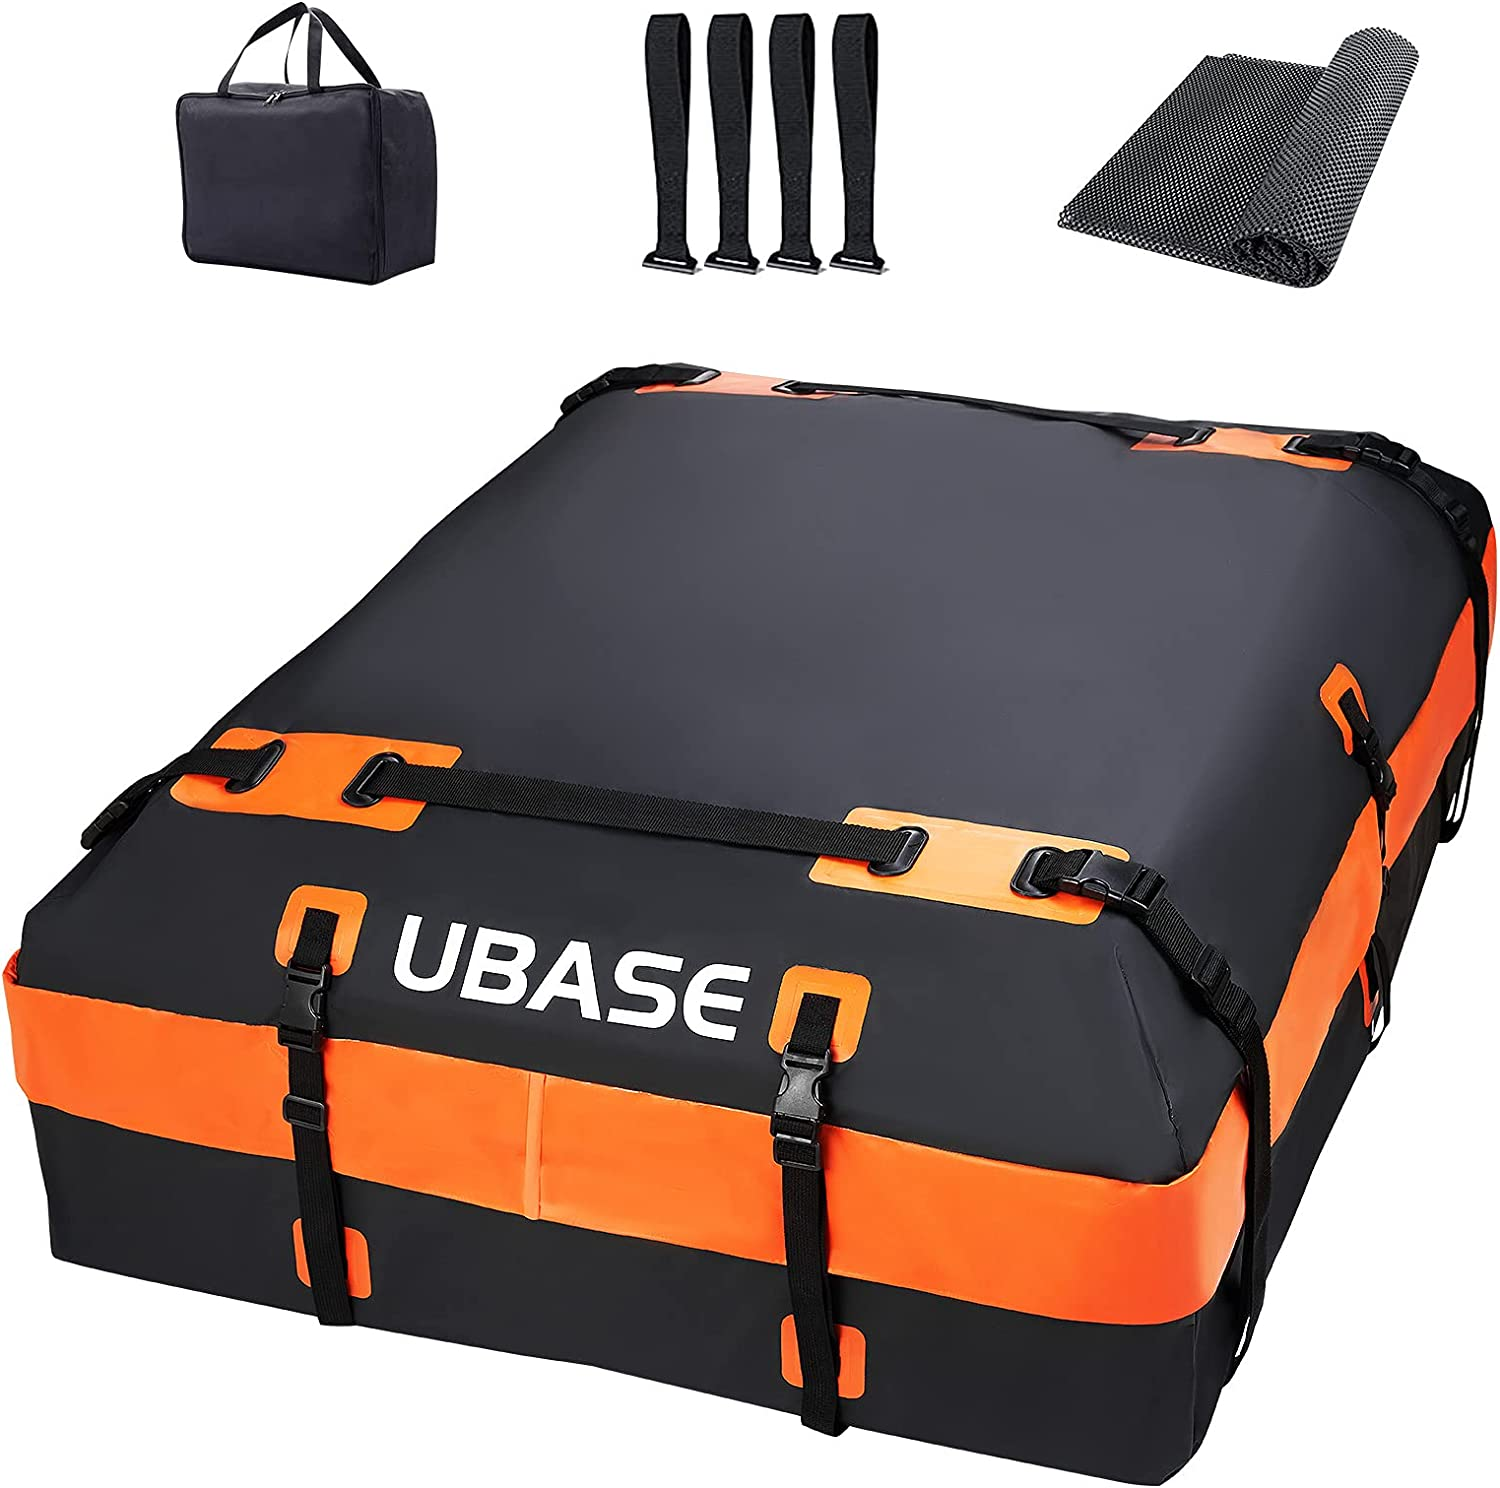 2021 UBASE Upgraded Rooftop Cargo Carrier Cheap mail order sales Cubic Waterpr feet 21 100%